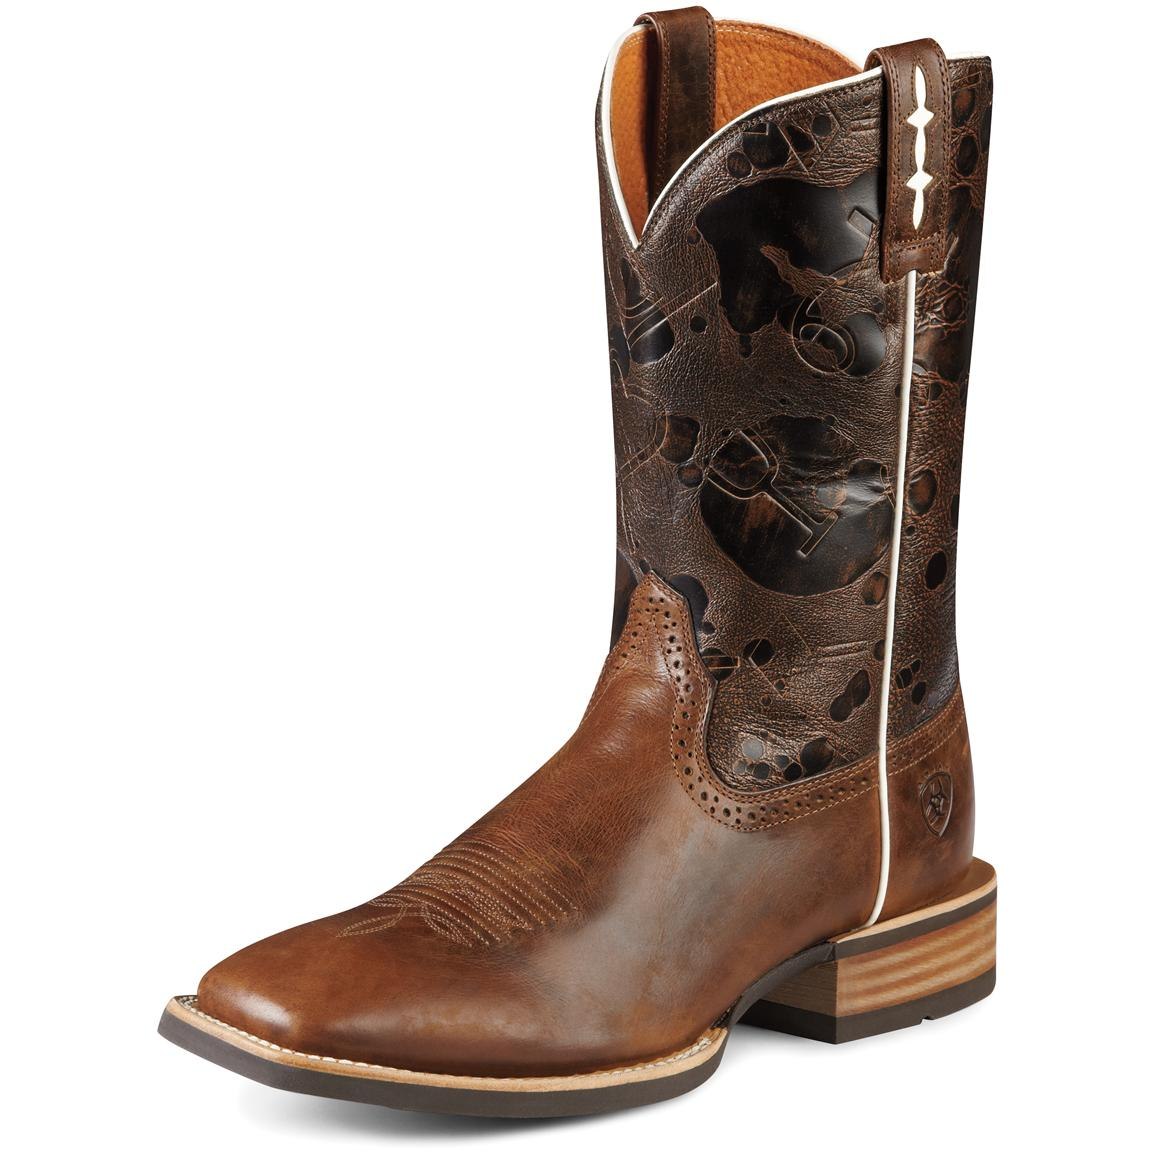 Men's Ariat® 11 inch Hot Iron Western Boots, Brown / Saddle Brown